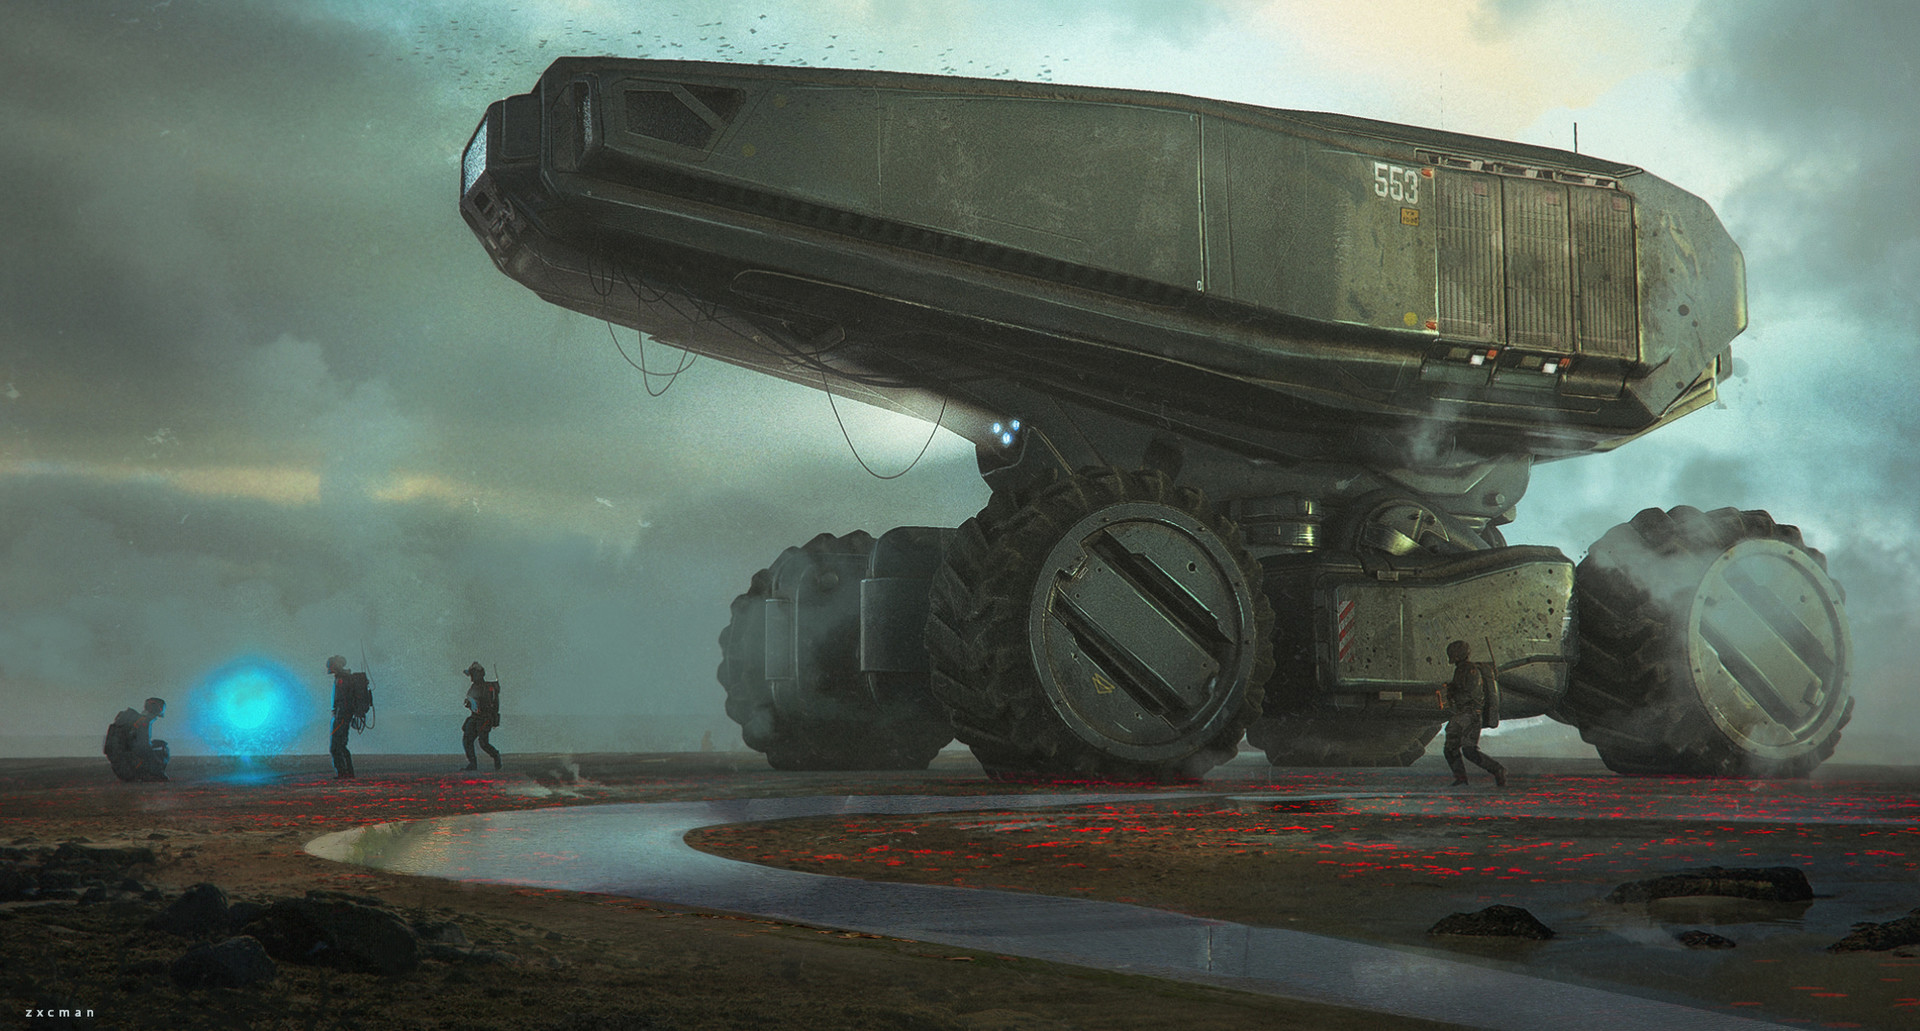 The Superb Sci-Fi Artworks of Dmitriy Rabochiy